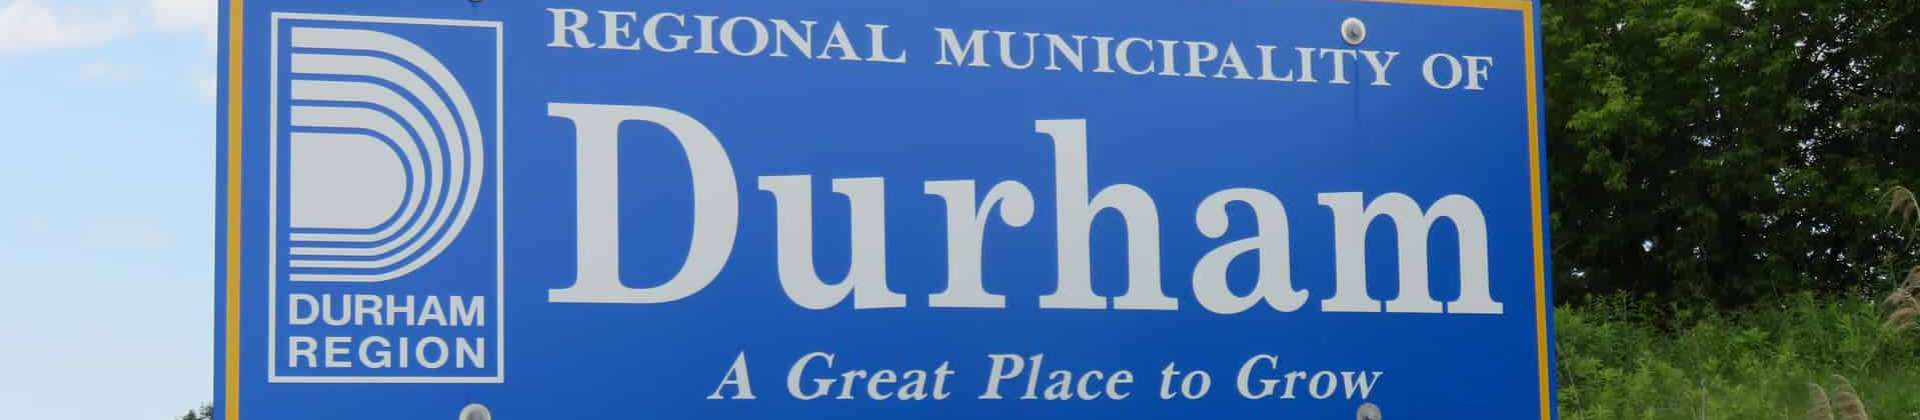 Durham Region sign